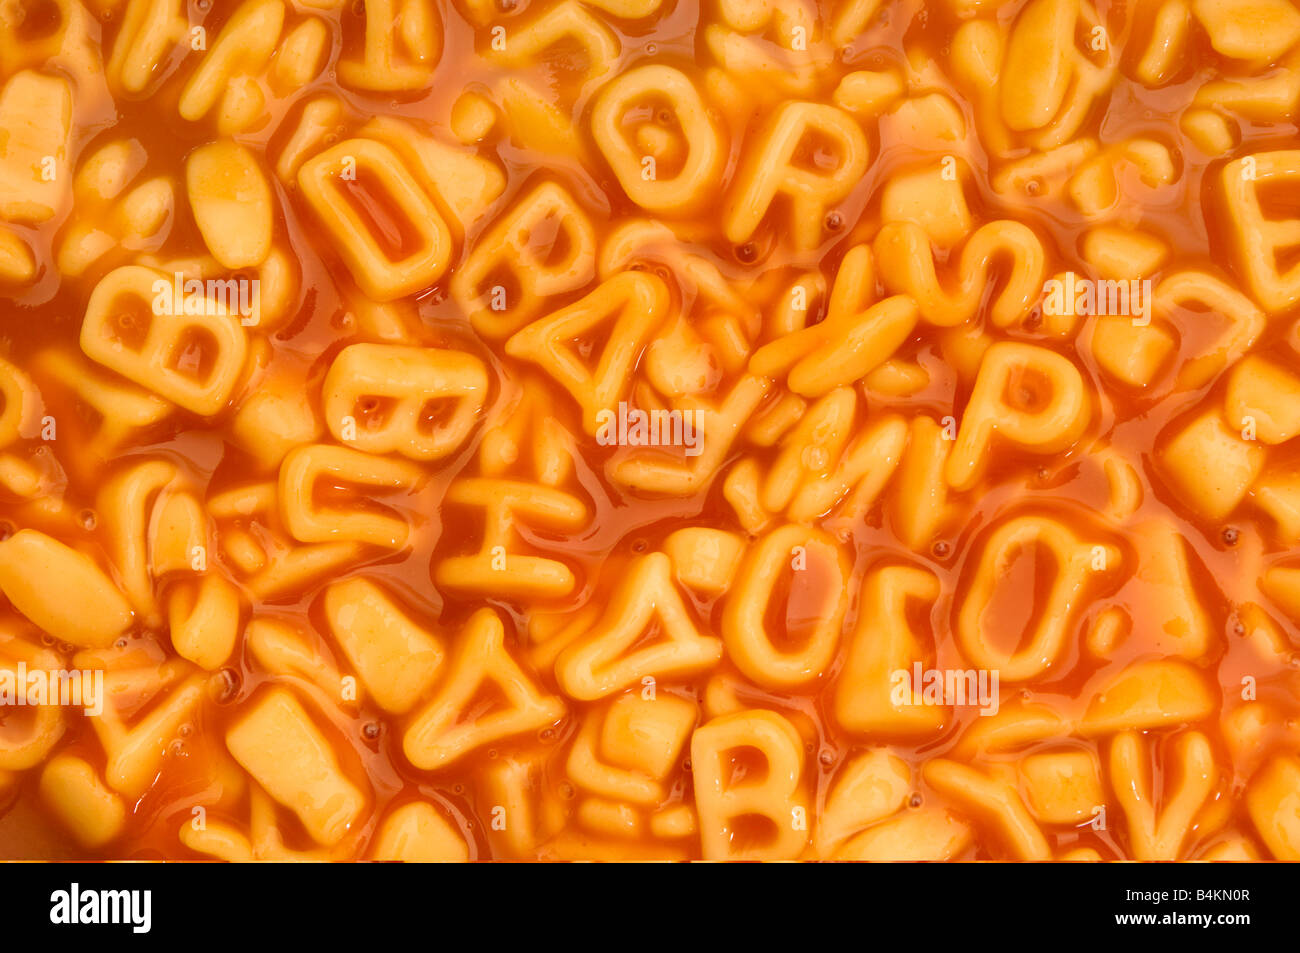 a background of alphabet spaghetti Stock Photo